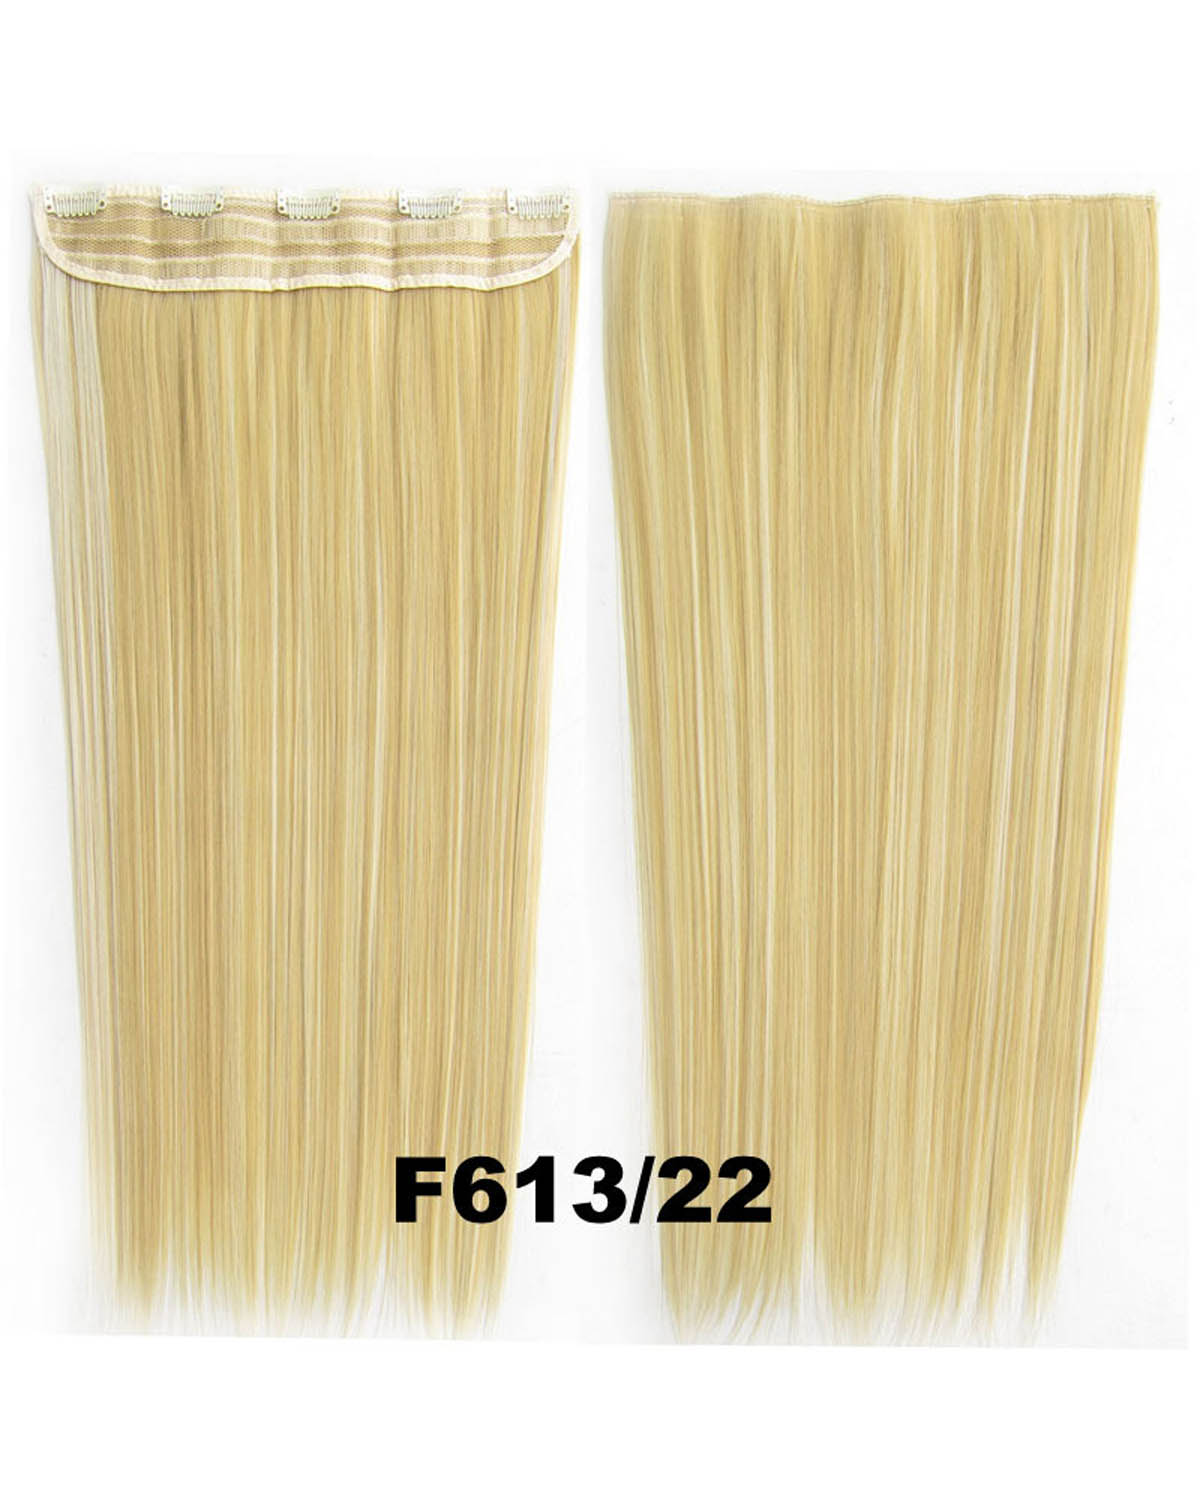 24 Inch Female Delicate Long and Straight Hot-Sale One Piece 5 Clips Clip in Synthetic Hair Extension F613/27